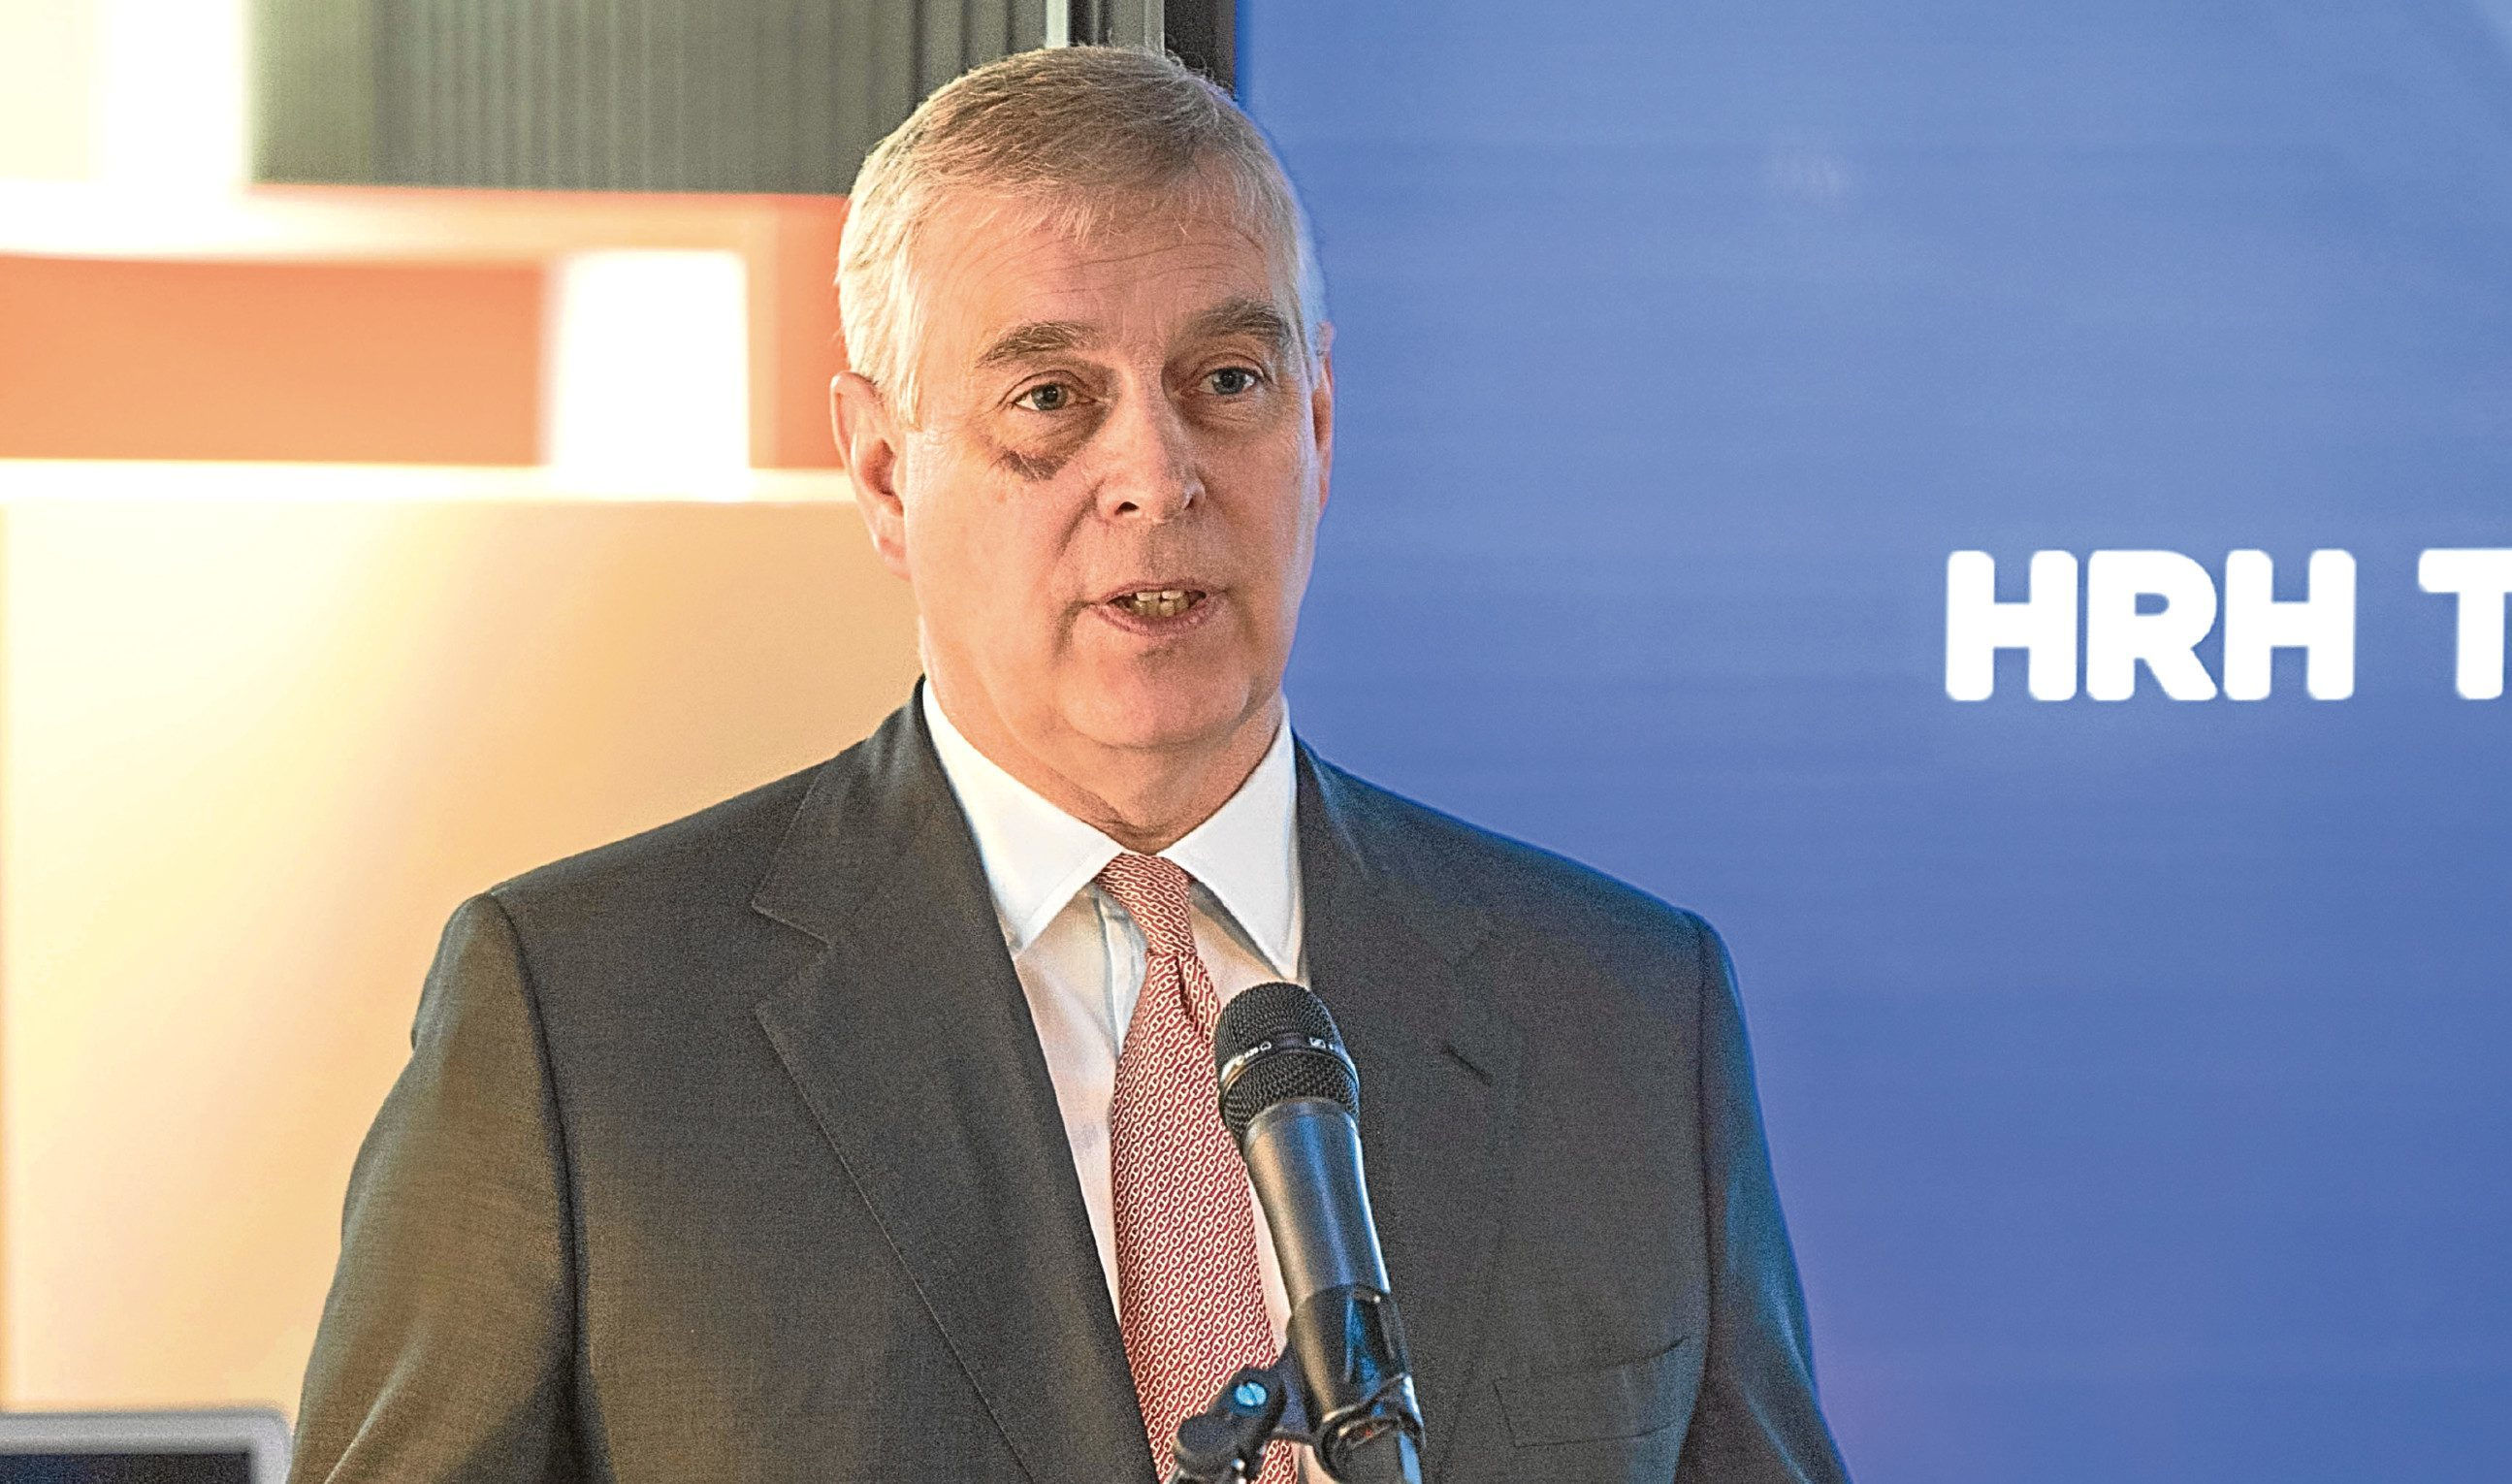 The Duke of York congratulated the two companies